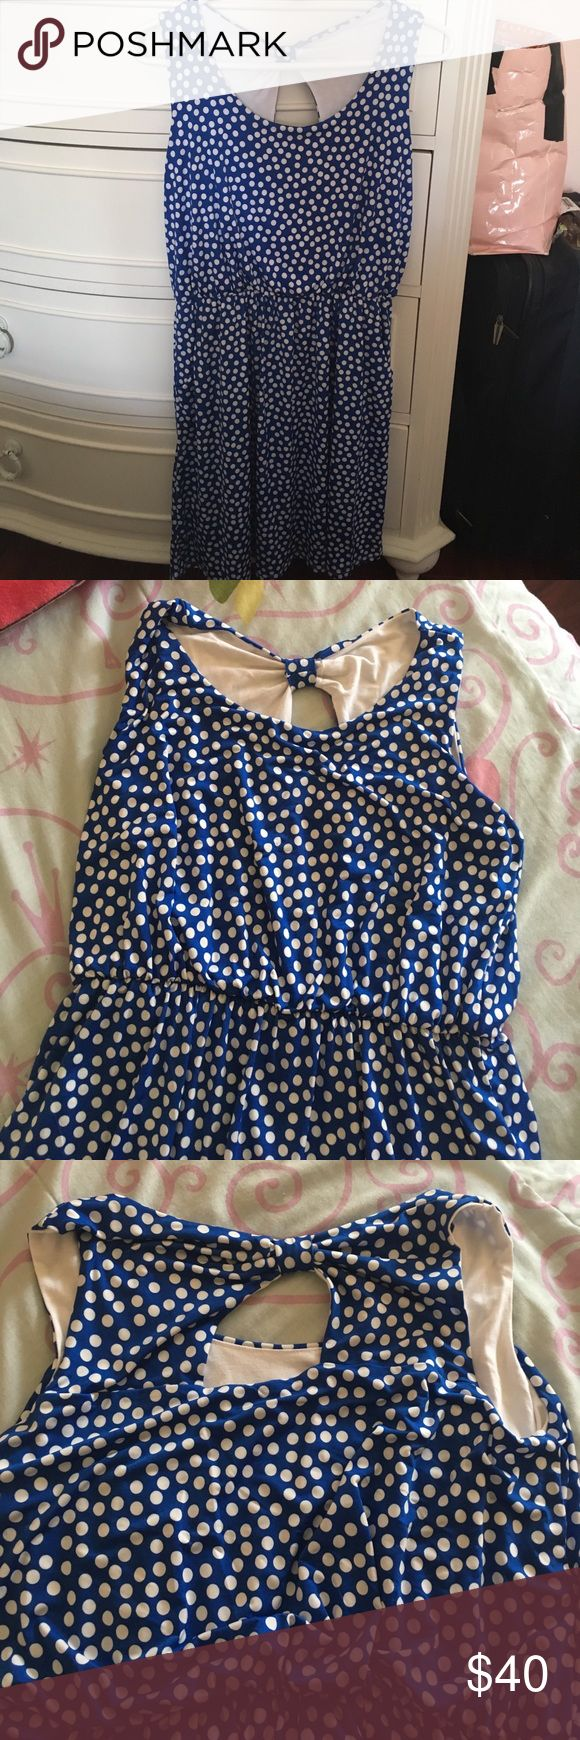 Lovely blue polka dot dress Offers accepted ✅ Trades accepted ✅ 93% Polyester 7% Spandex 🍃 Medium Petite dress 👗 NWOT🔅Questions? Ask them below! 💞 Forever 21 Dresses